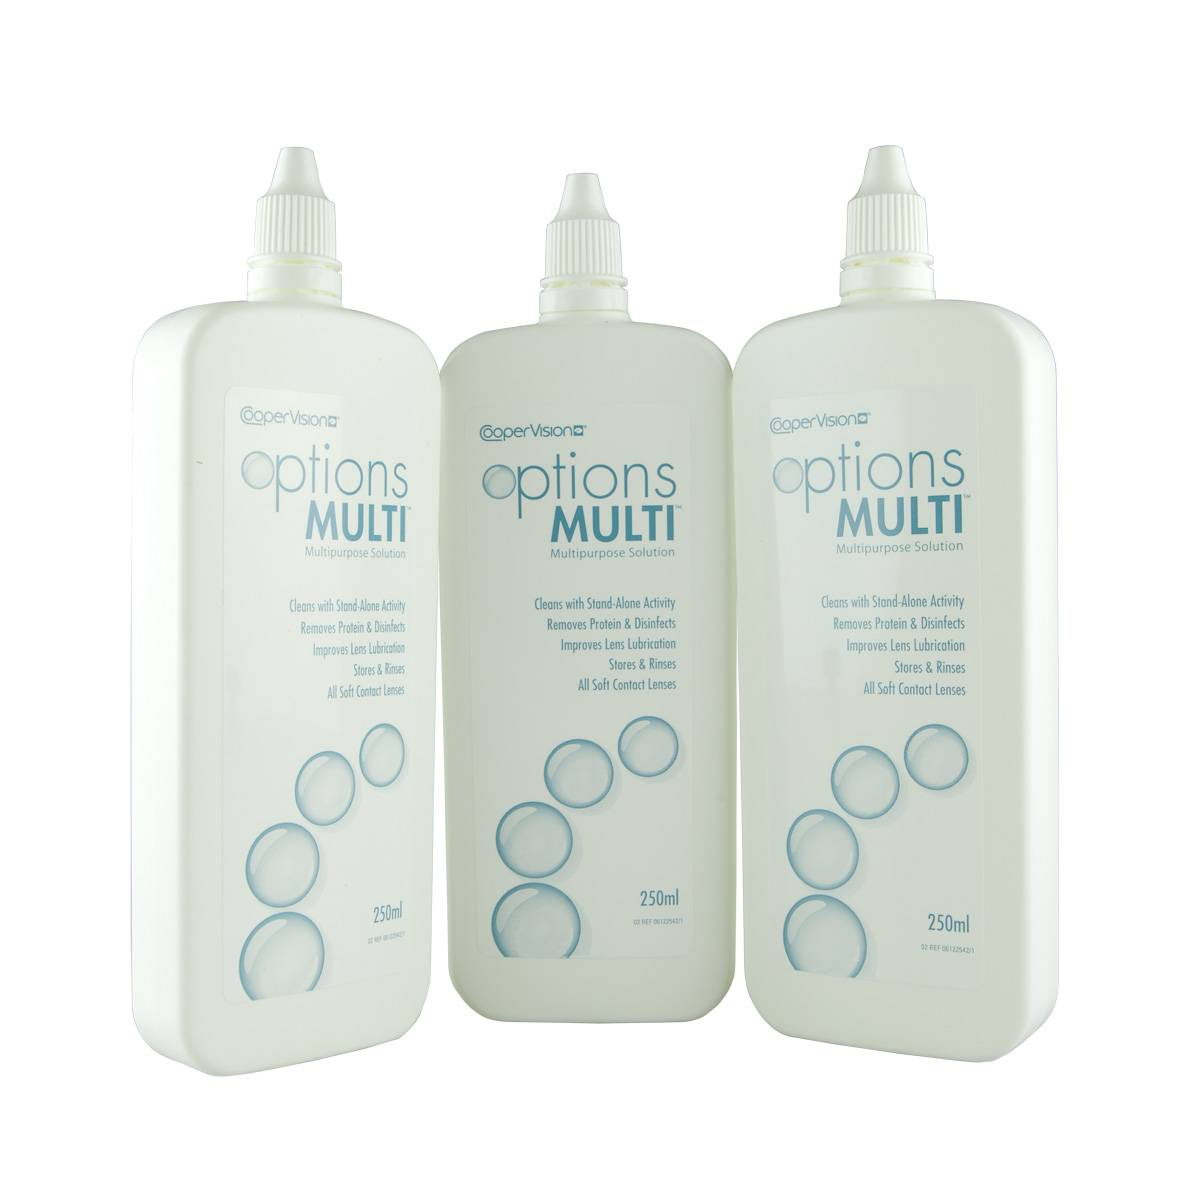 CooperVision Options Multi (3*250ml), Contact Lens Solution, Triple Pack, Includes Case